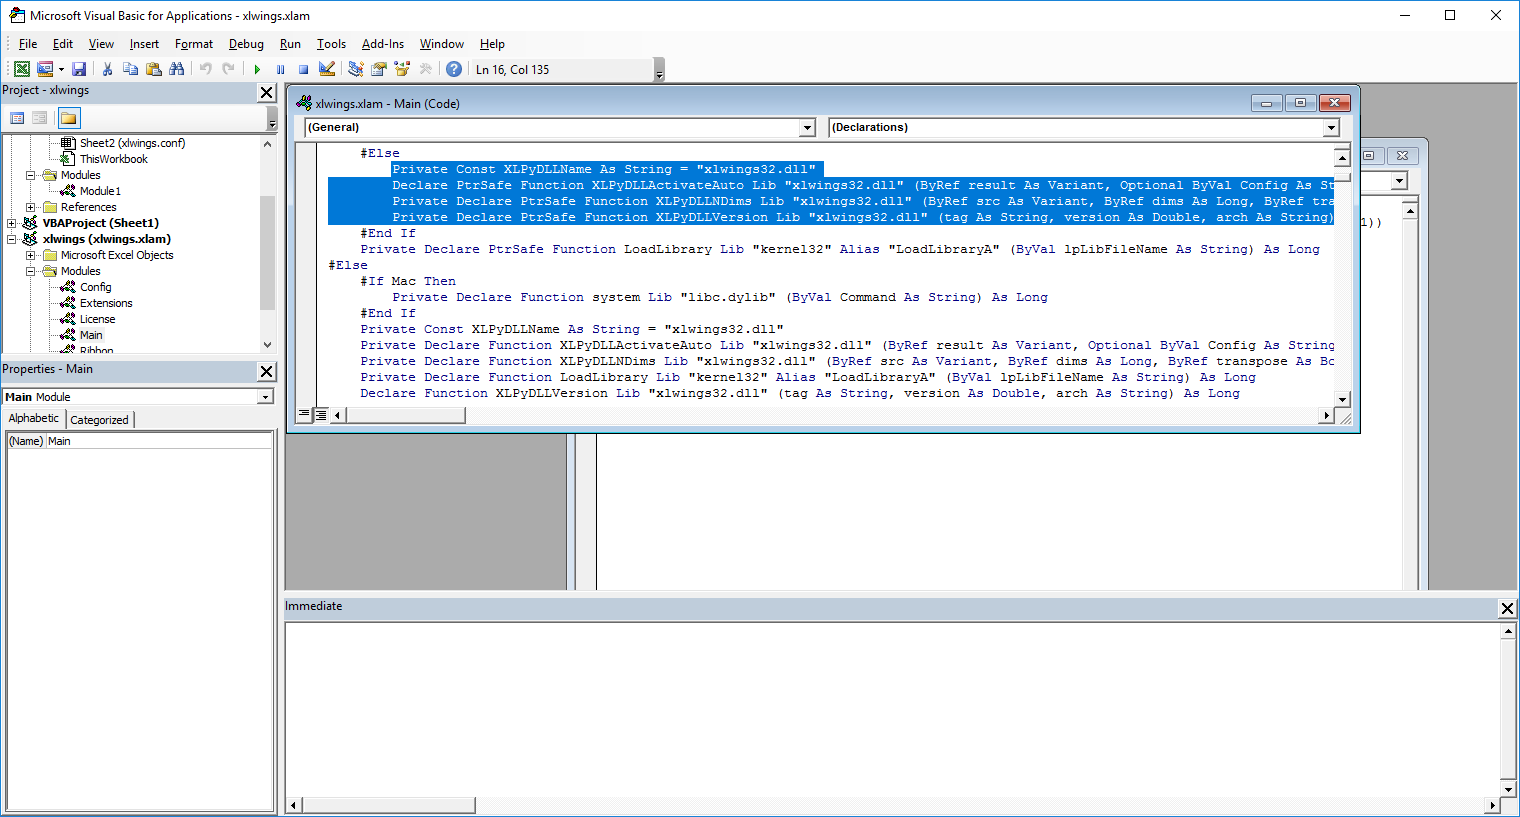 visual basic for applications and function The visual basic code is mainly there to make it possible to use objects customized for each office host application the fusion between vba and host specific code can be seen in this code sample (taken from the microsoft northwind sample database) where purely vba code is shown in red and access specific code is shown in blue.